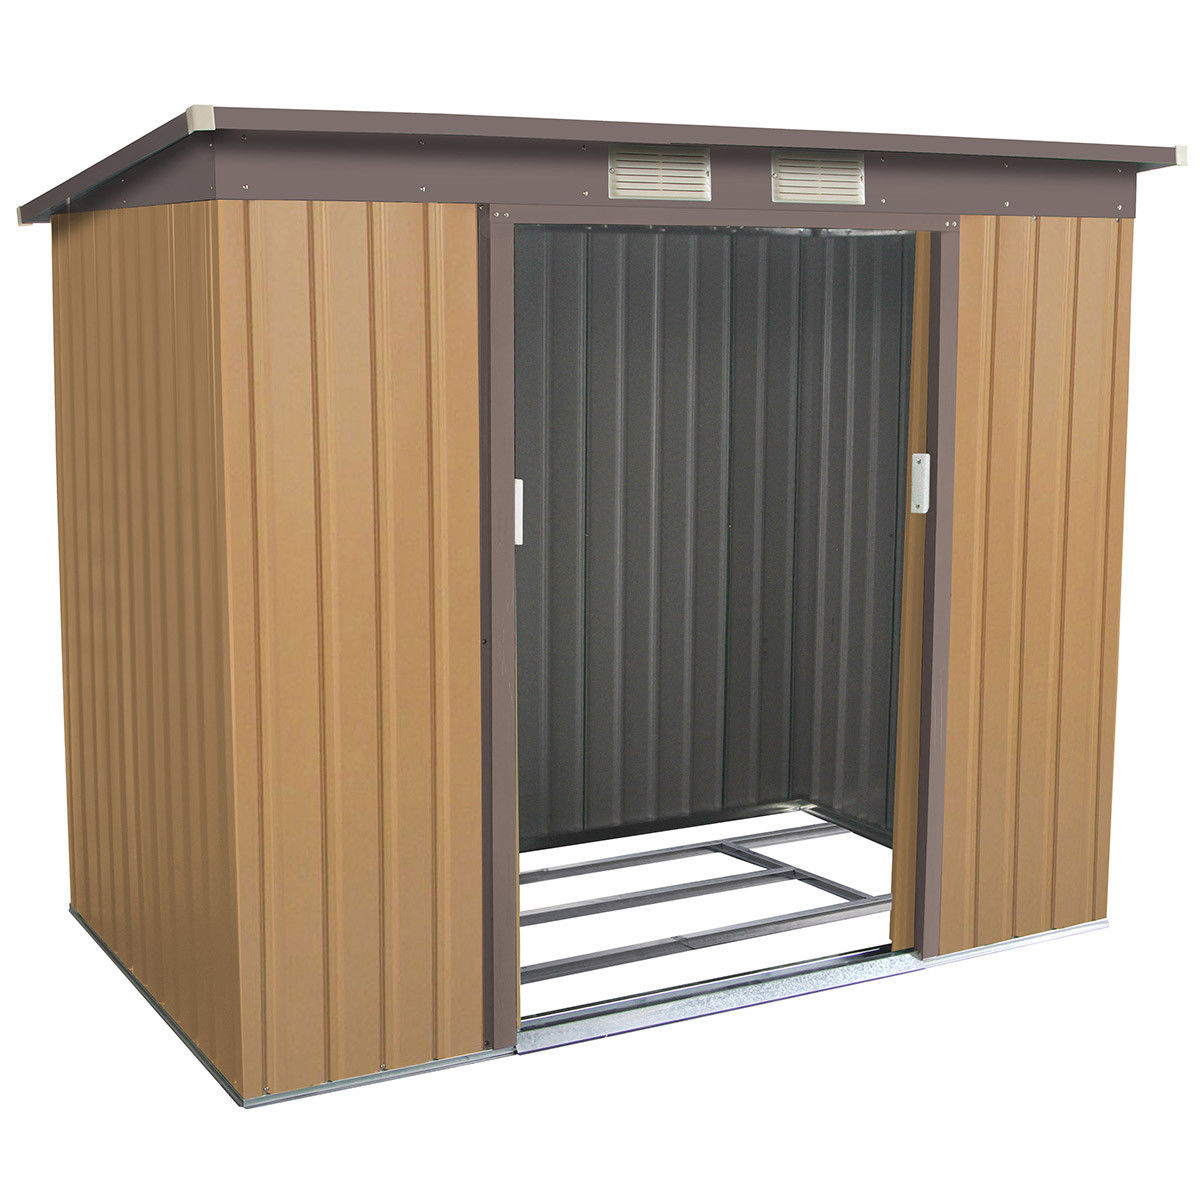 Gymax Outdoor Garden Storage Shed Tool House Sliding Door Metal Frame Khaki